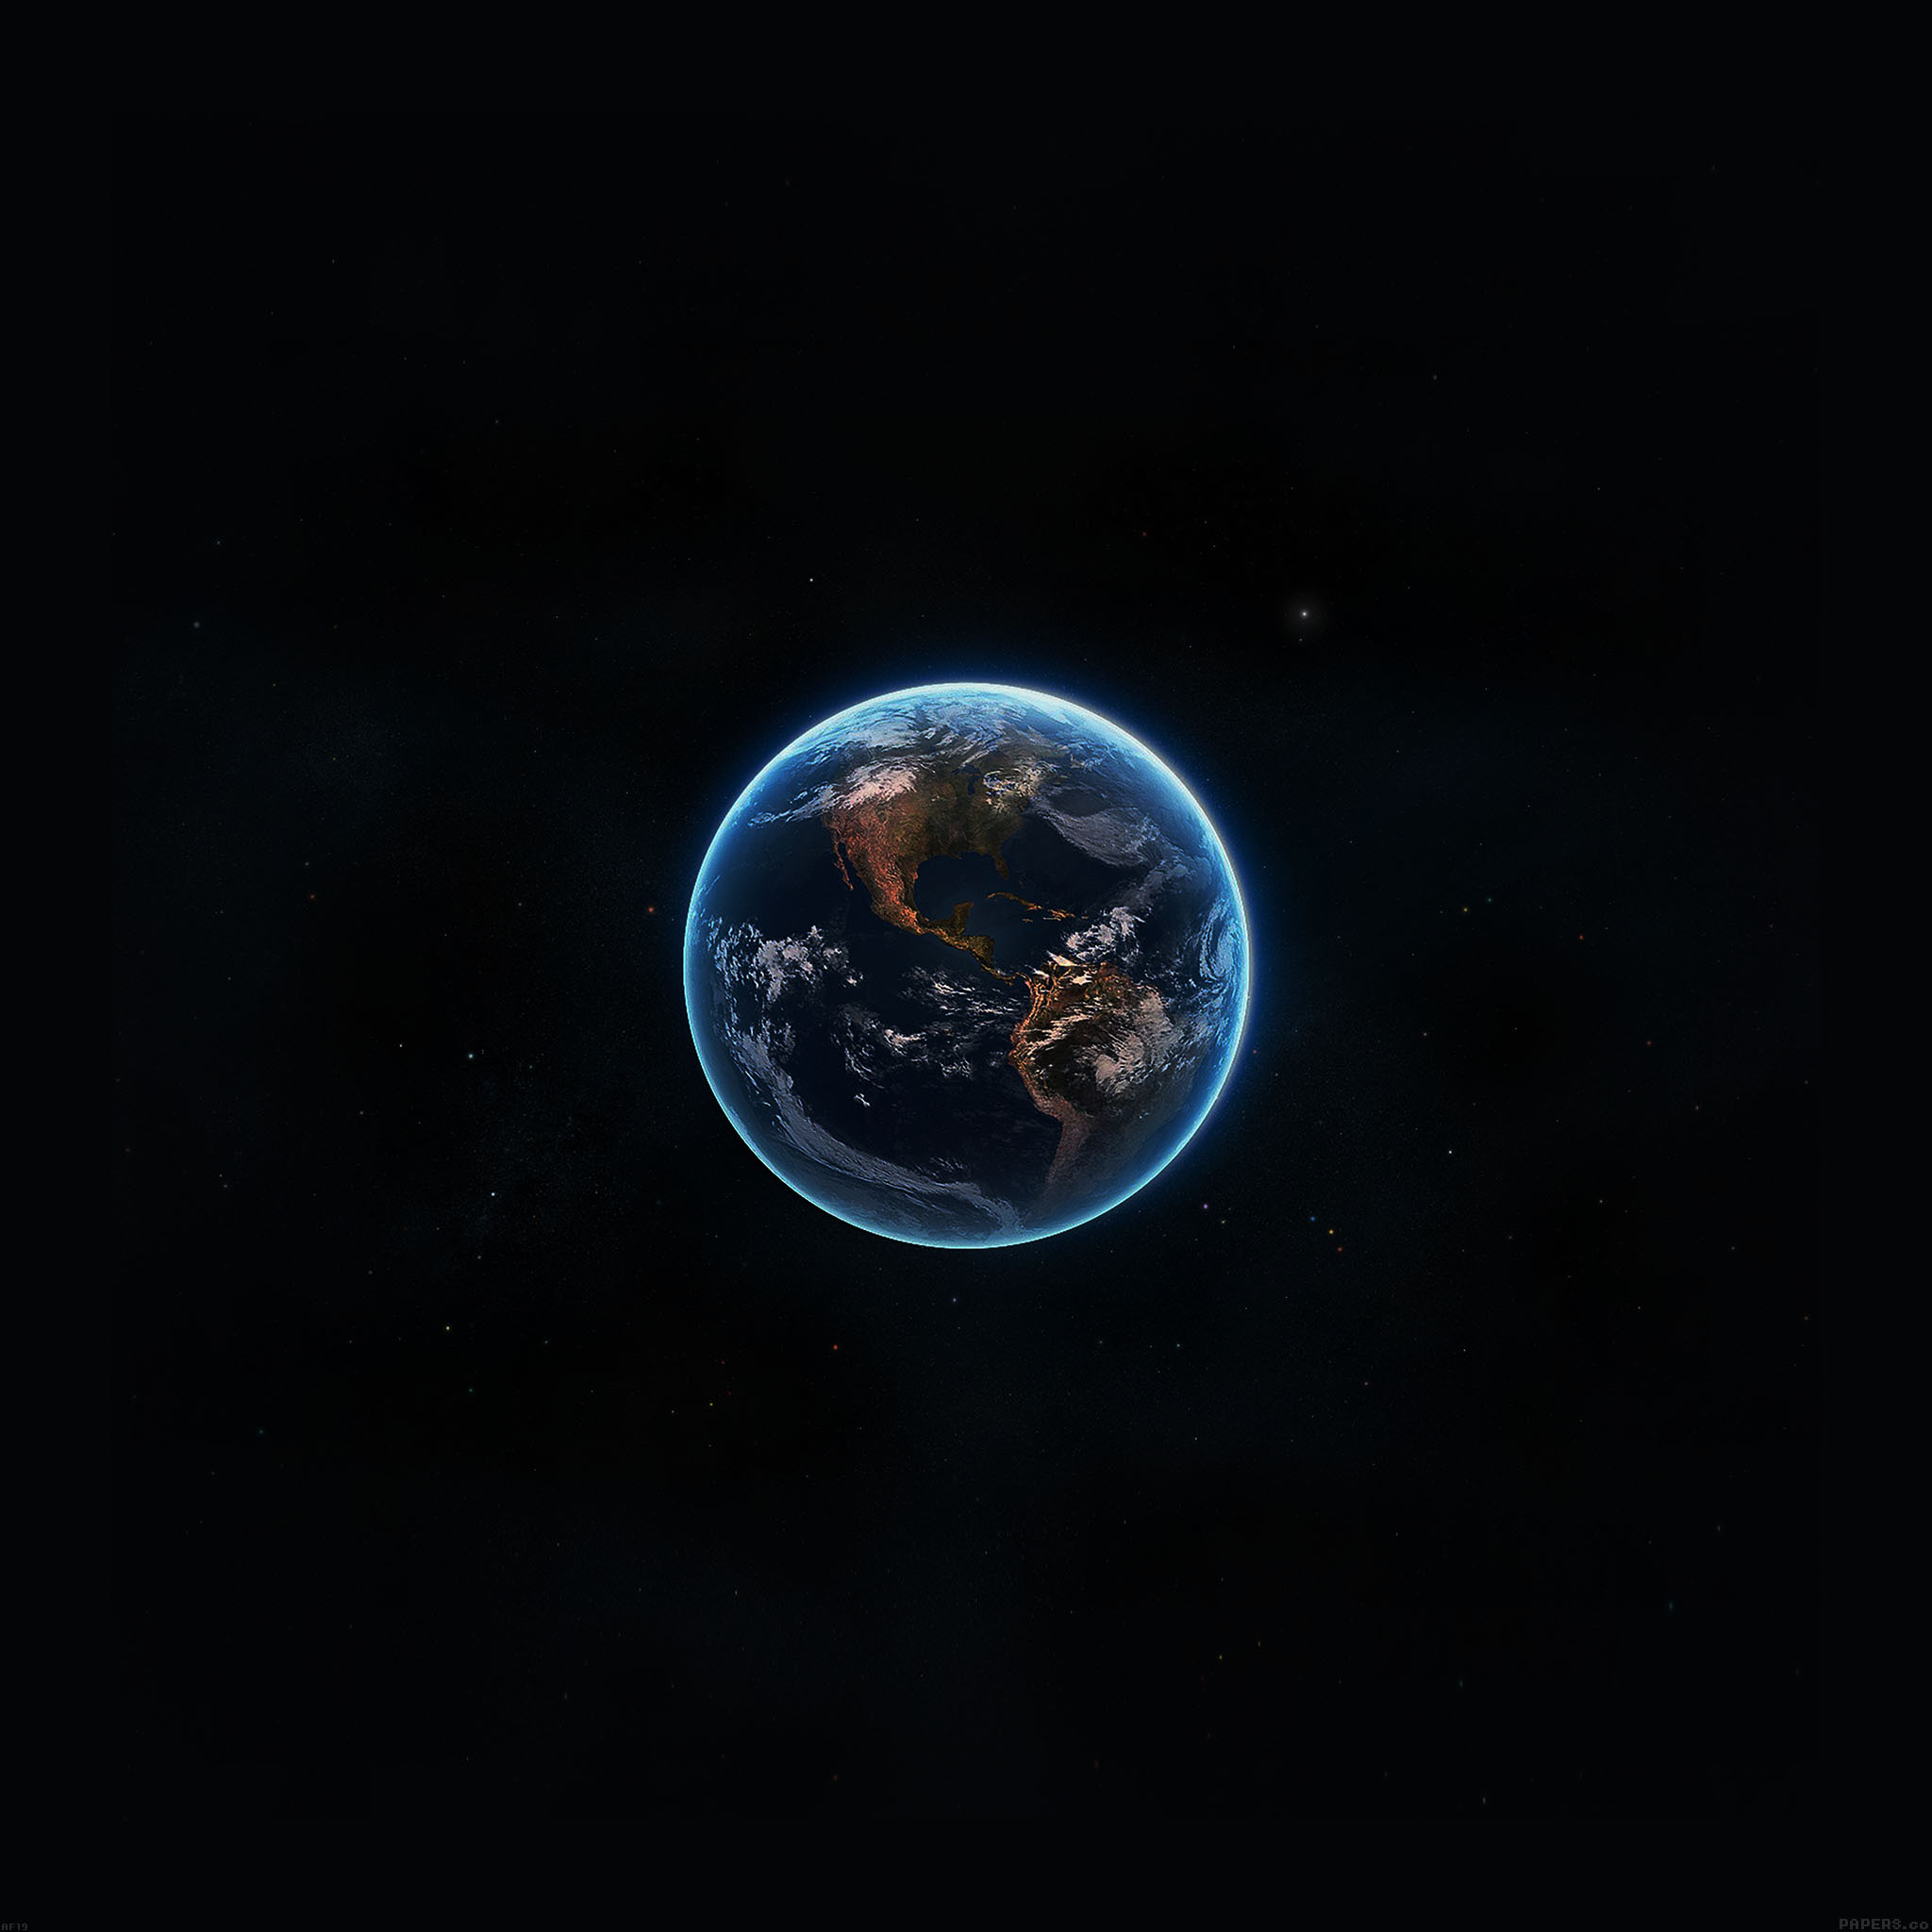 Amazing Iphone Wallpapers: Af19-earth-view-from-space-amazing-satellite